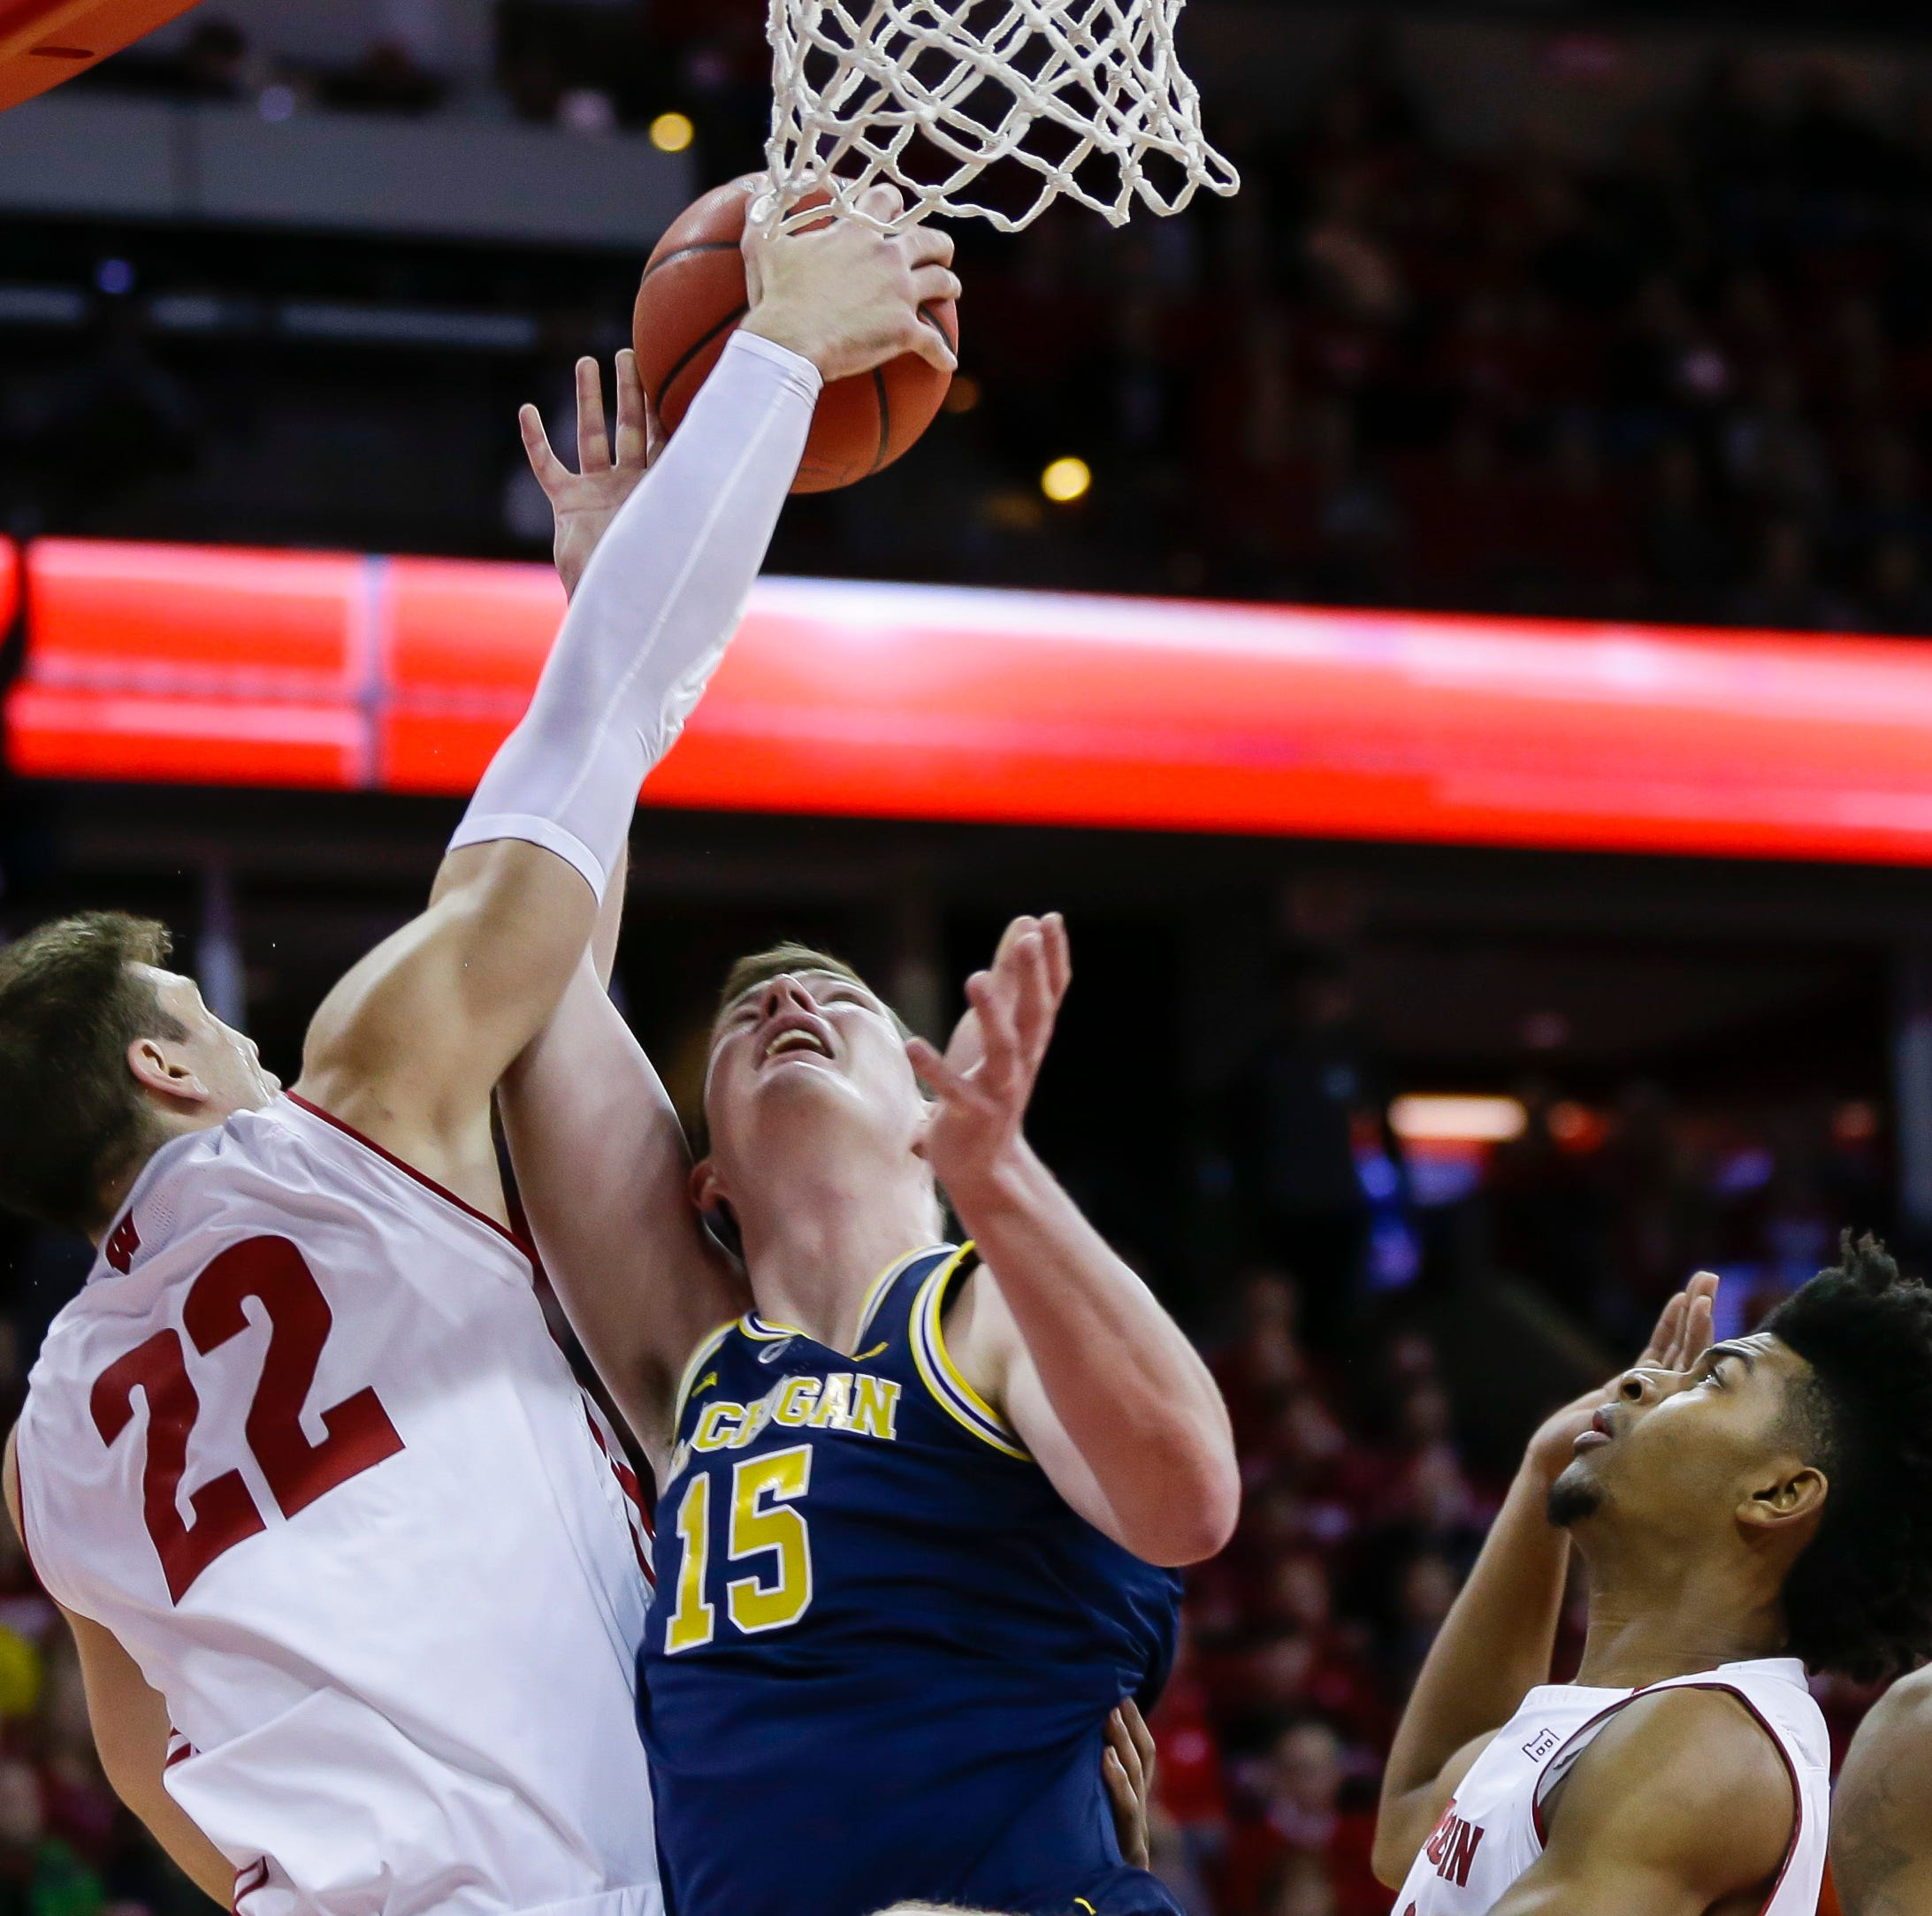 Run over: No. 2 Michigan loses for first time this season